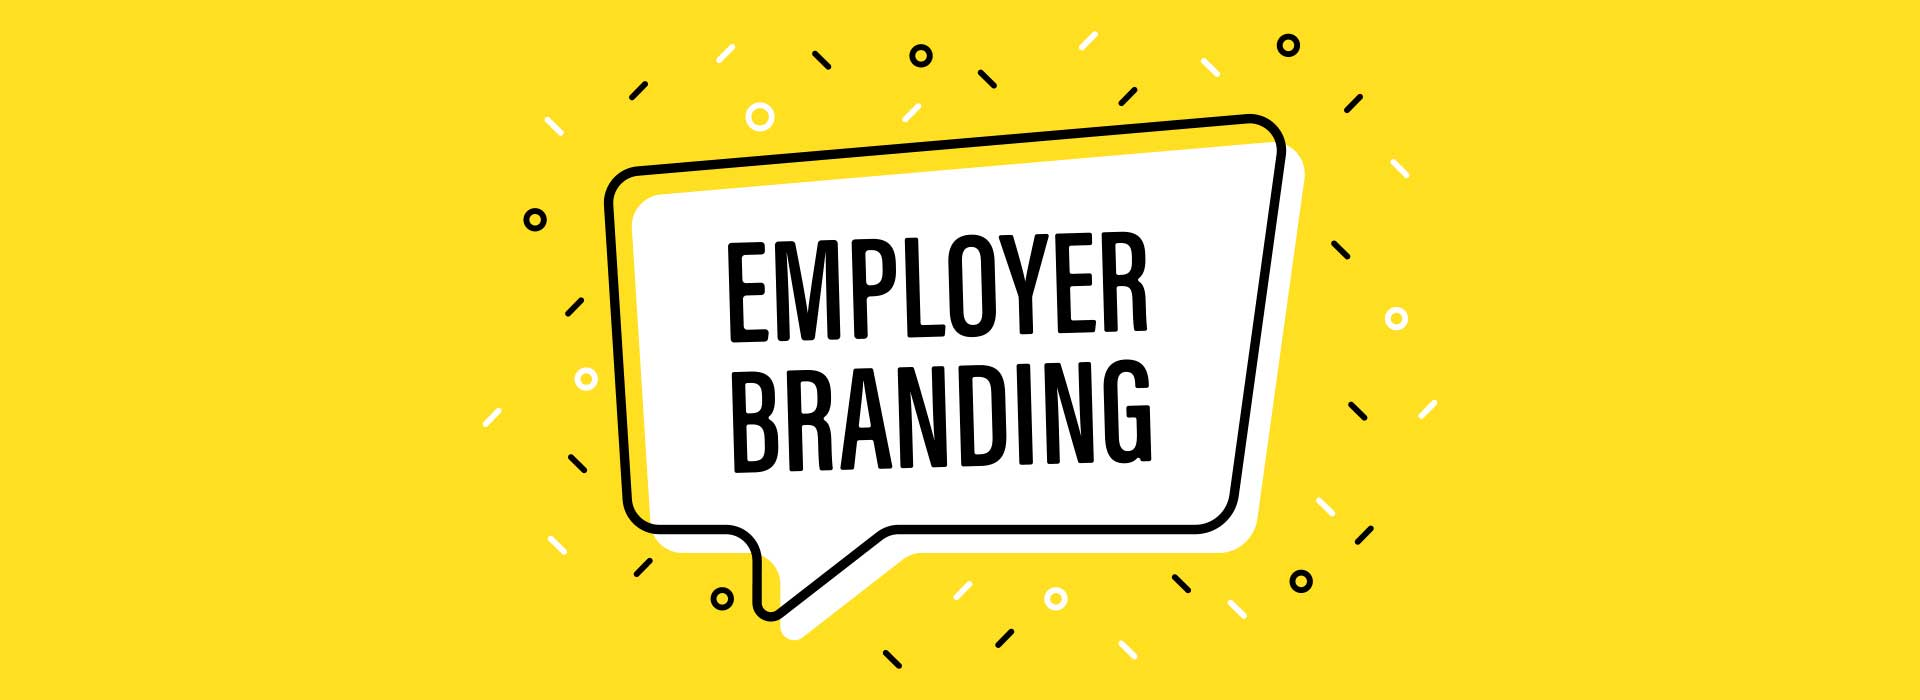 employer-branding-slide